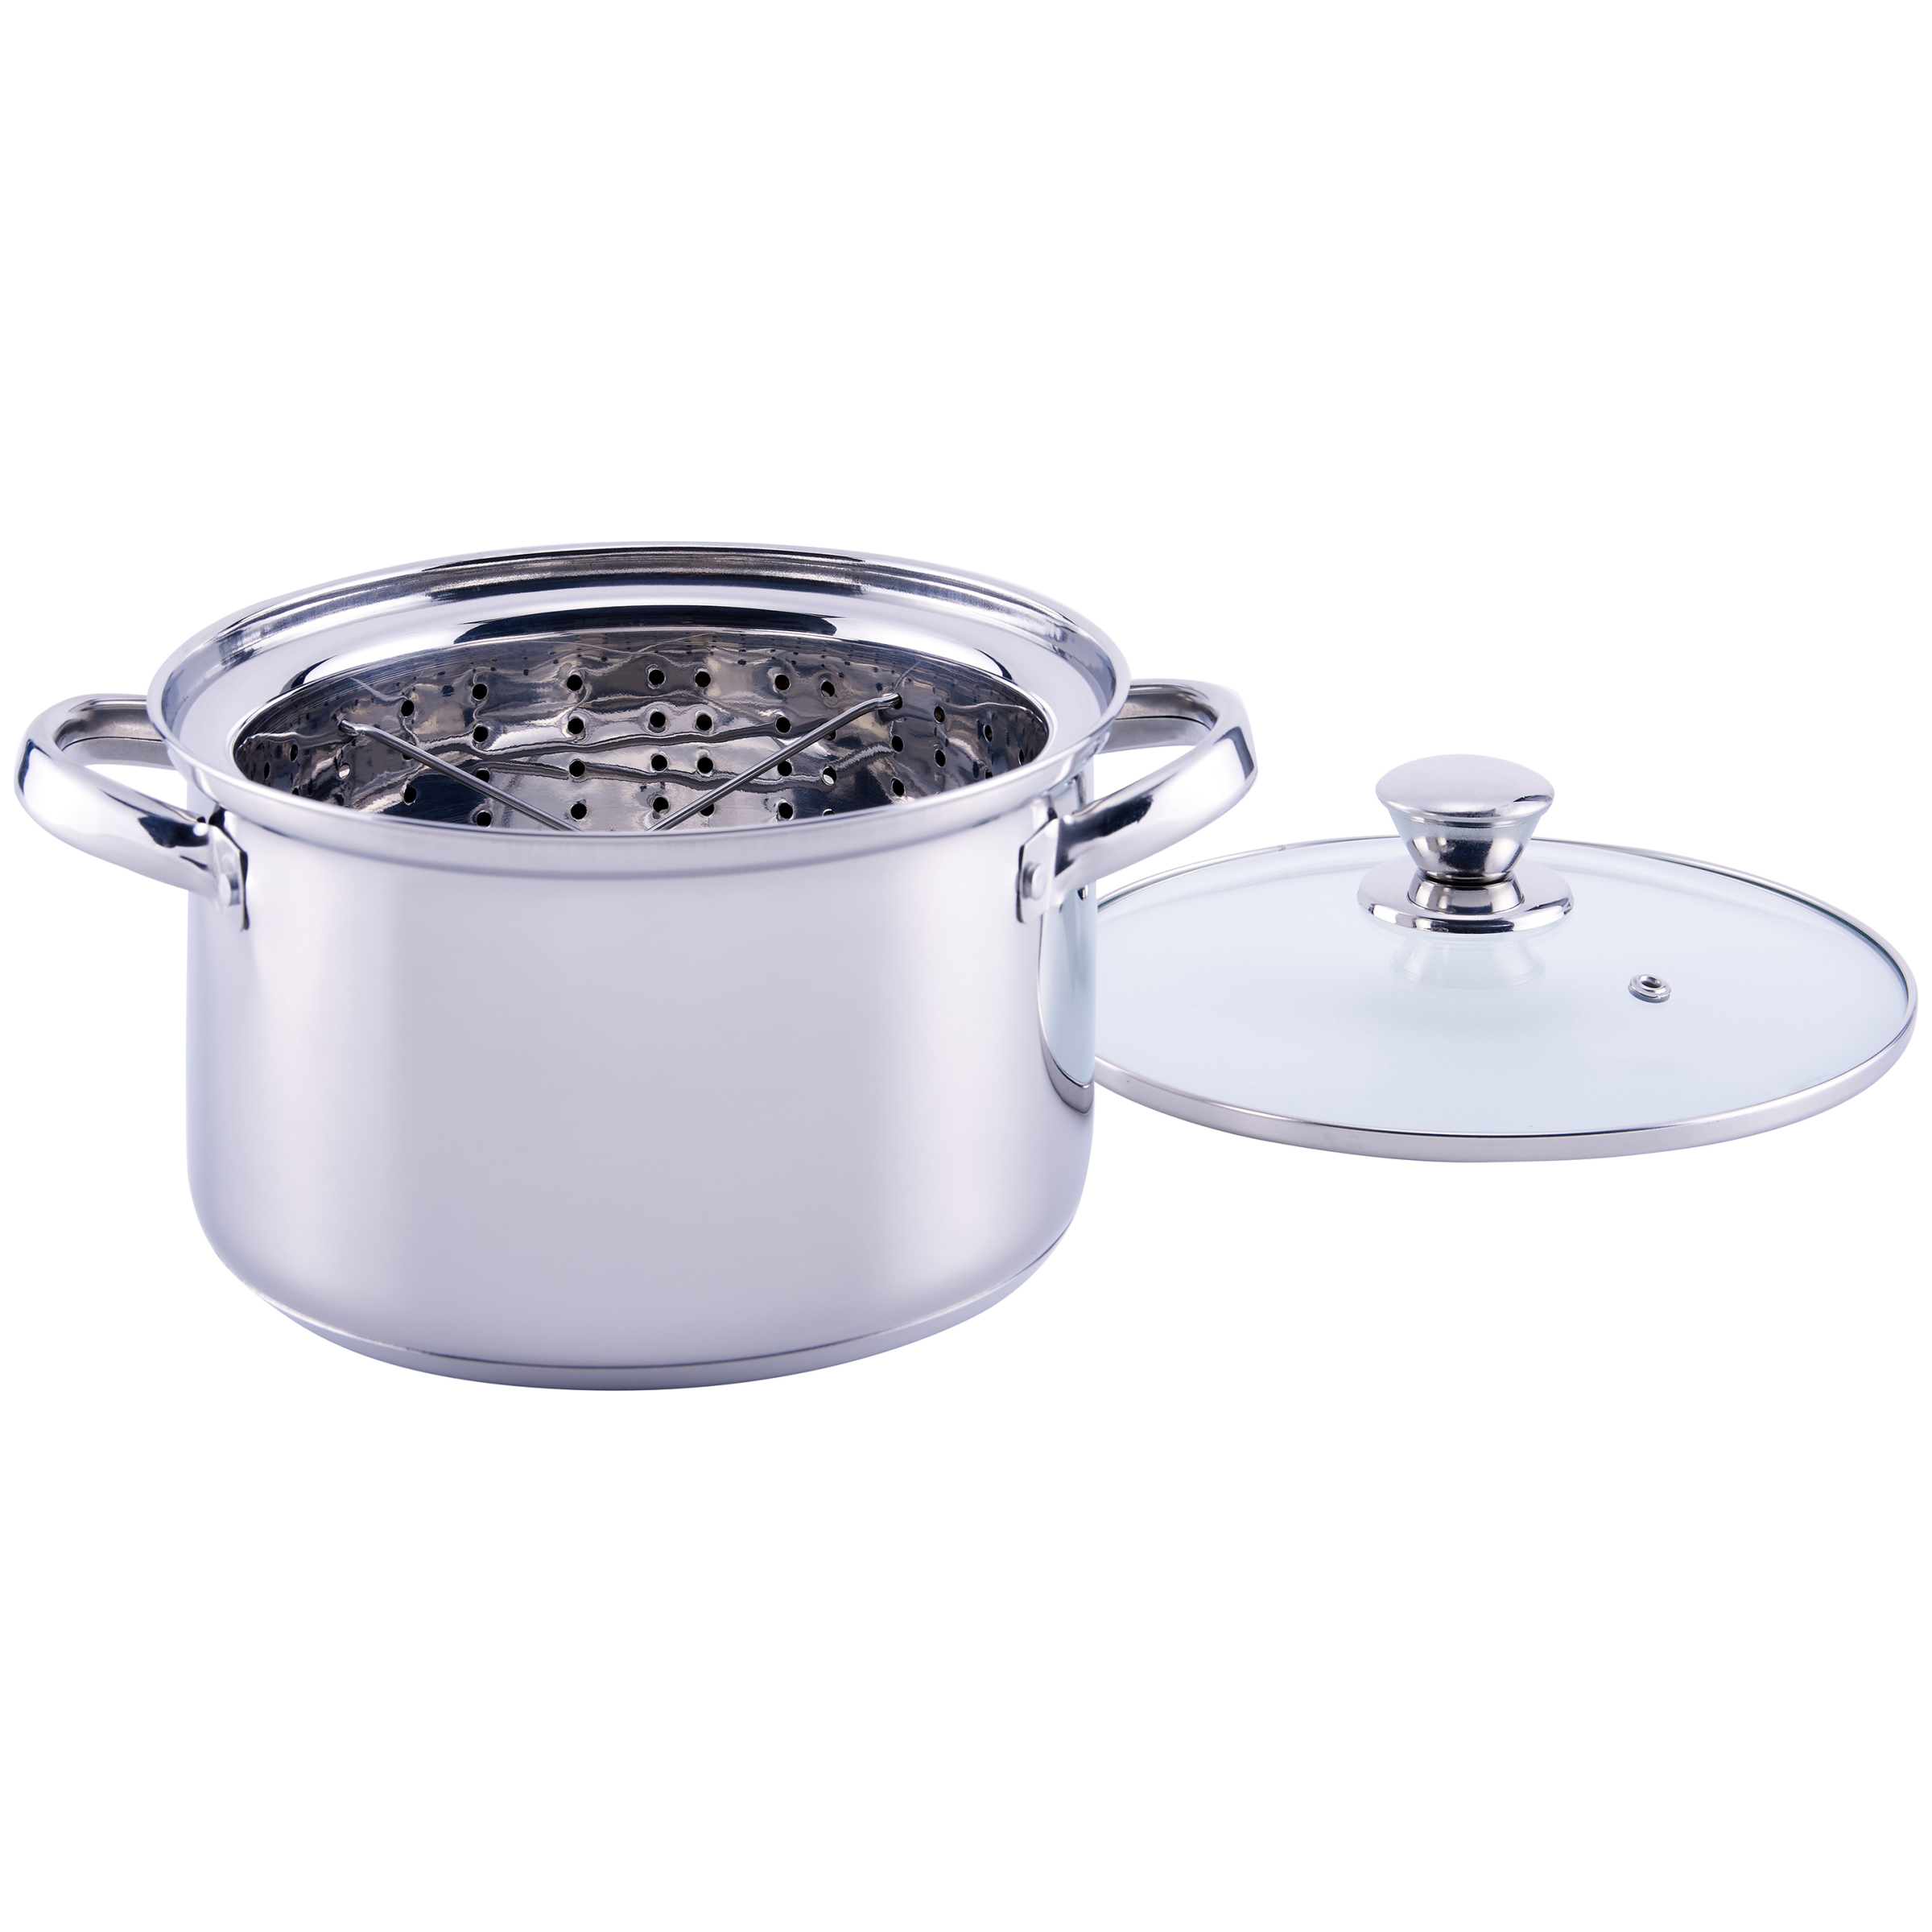 Mainstays Stainless Steel 4 Quart Steamer Pot With Insert And Lid